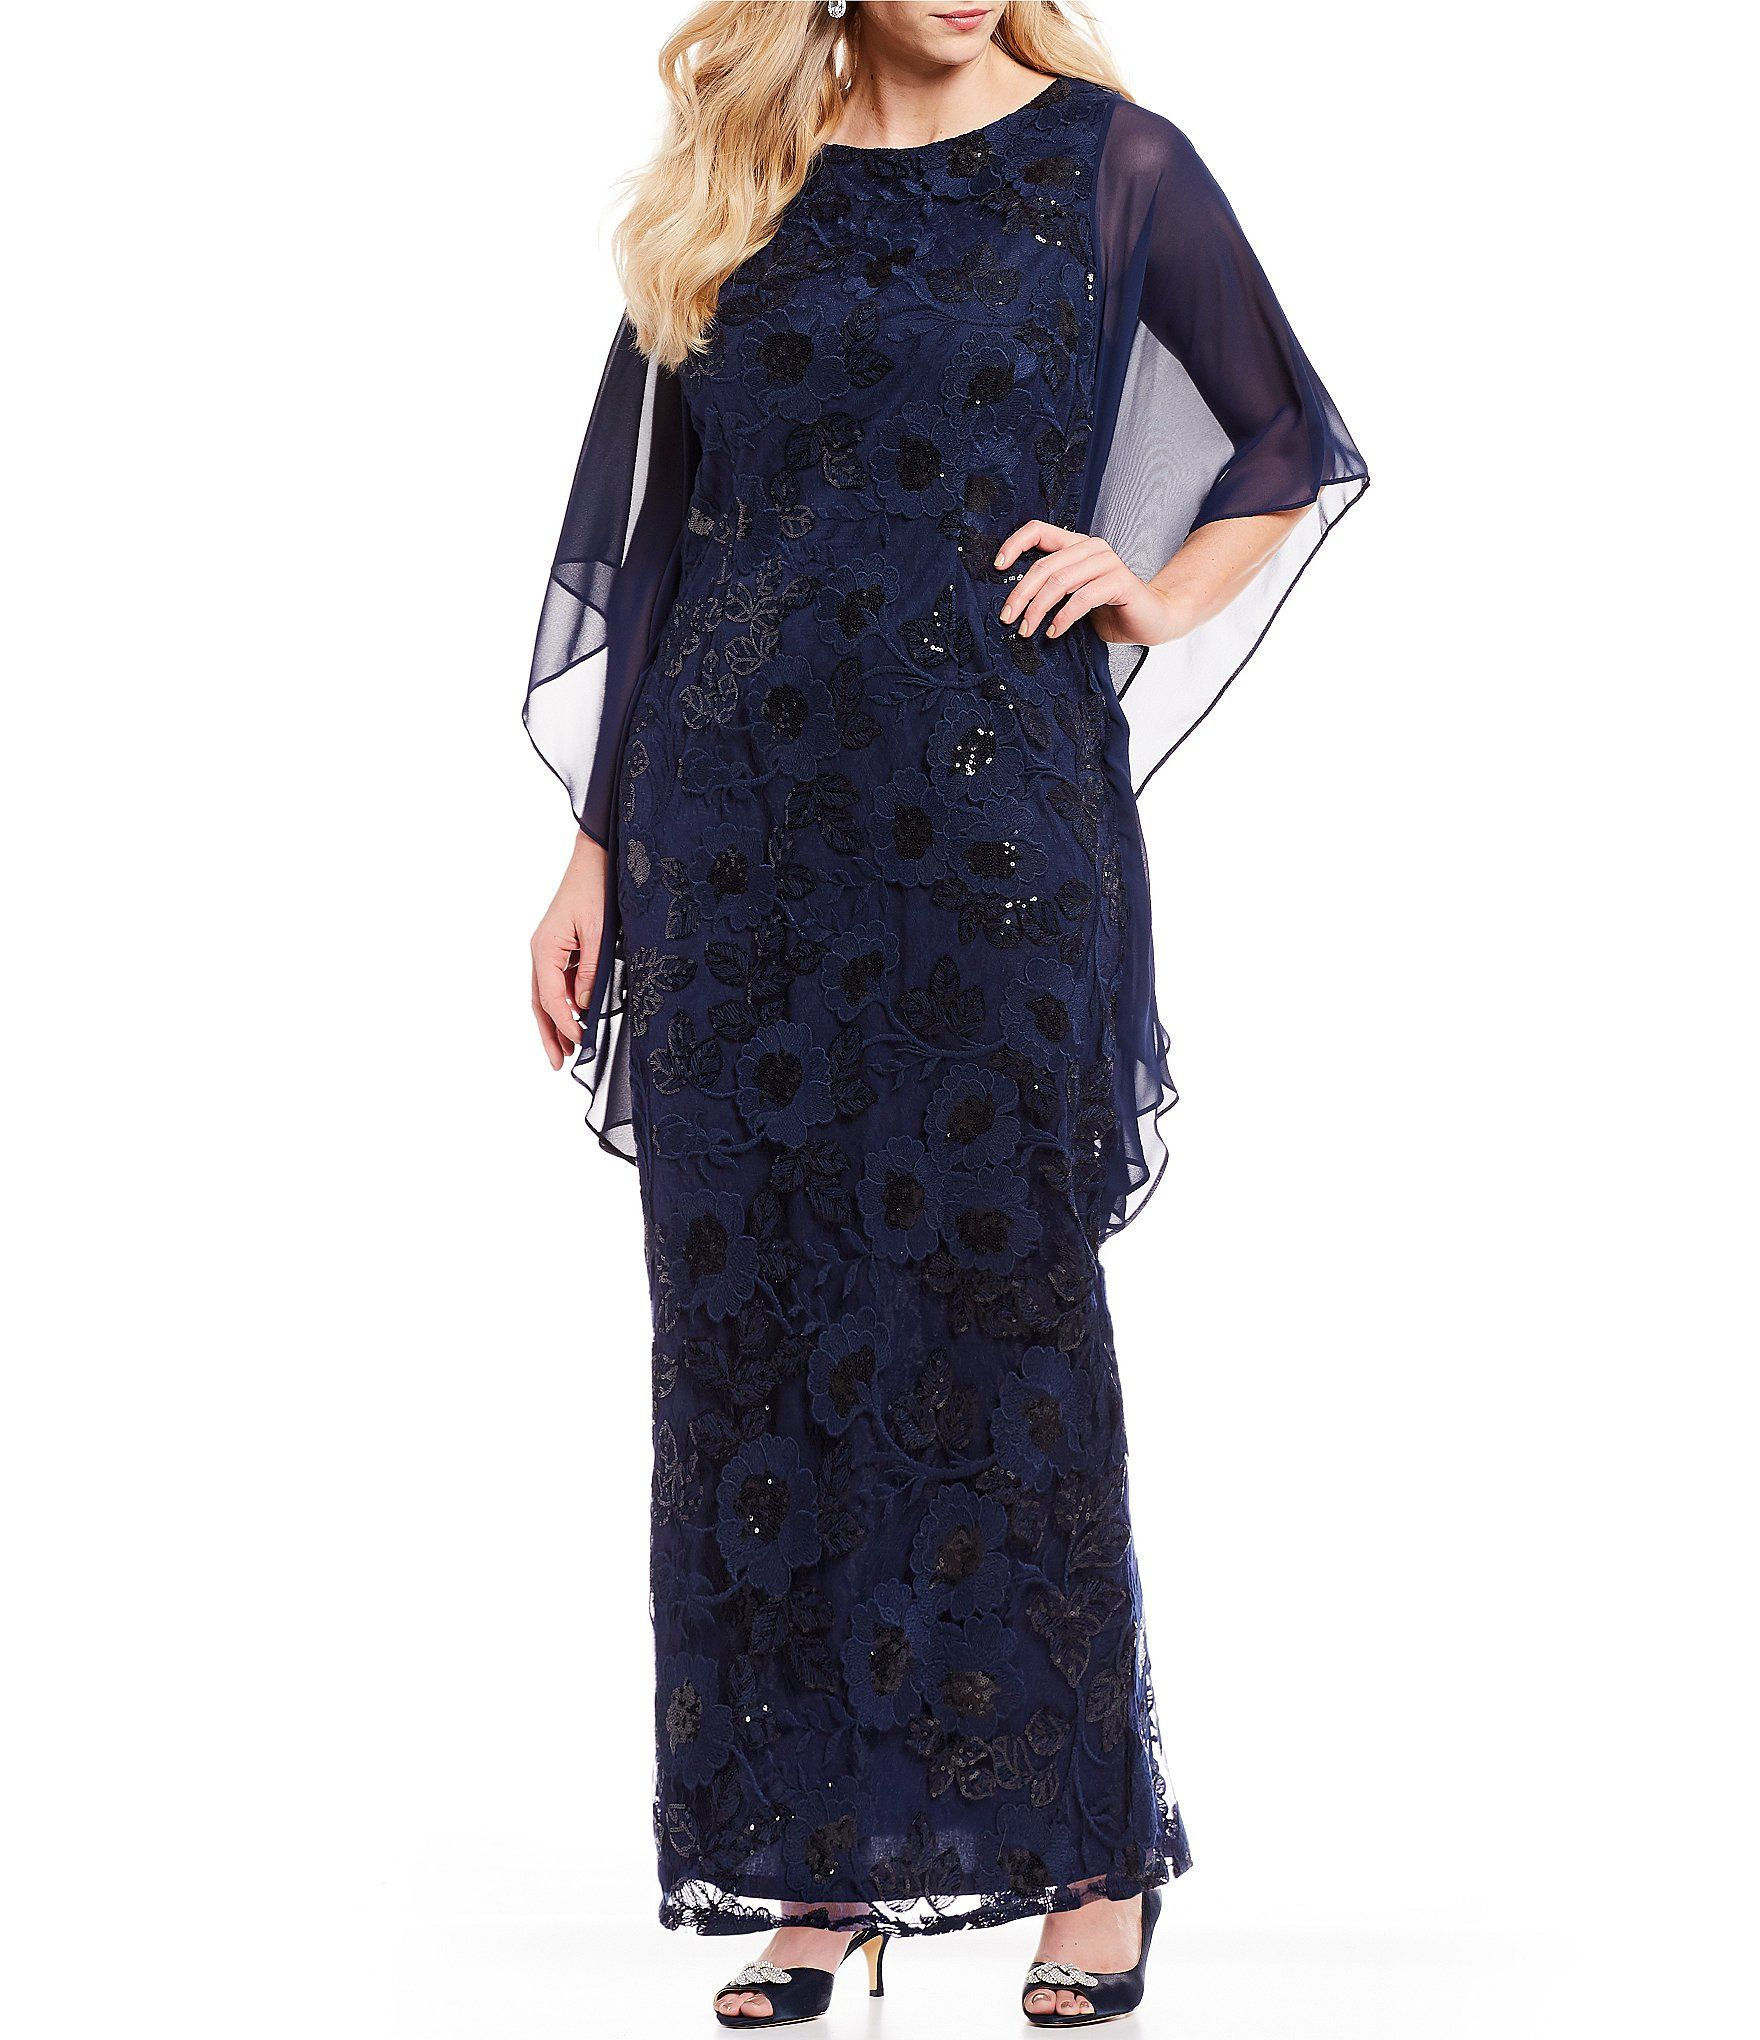 d99ddb8dba0 Shop for Brianna Plus Size Sequin Embroidered Cascade Sleeve Column Gown at  Dillards.com. Visit Dillards.com to find clothing